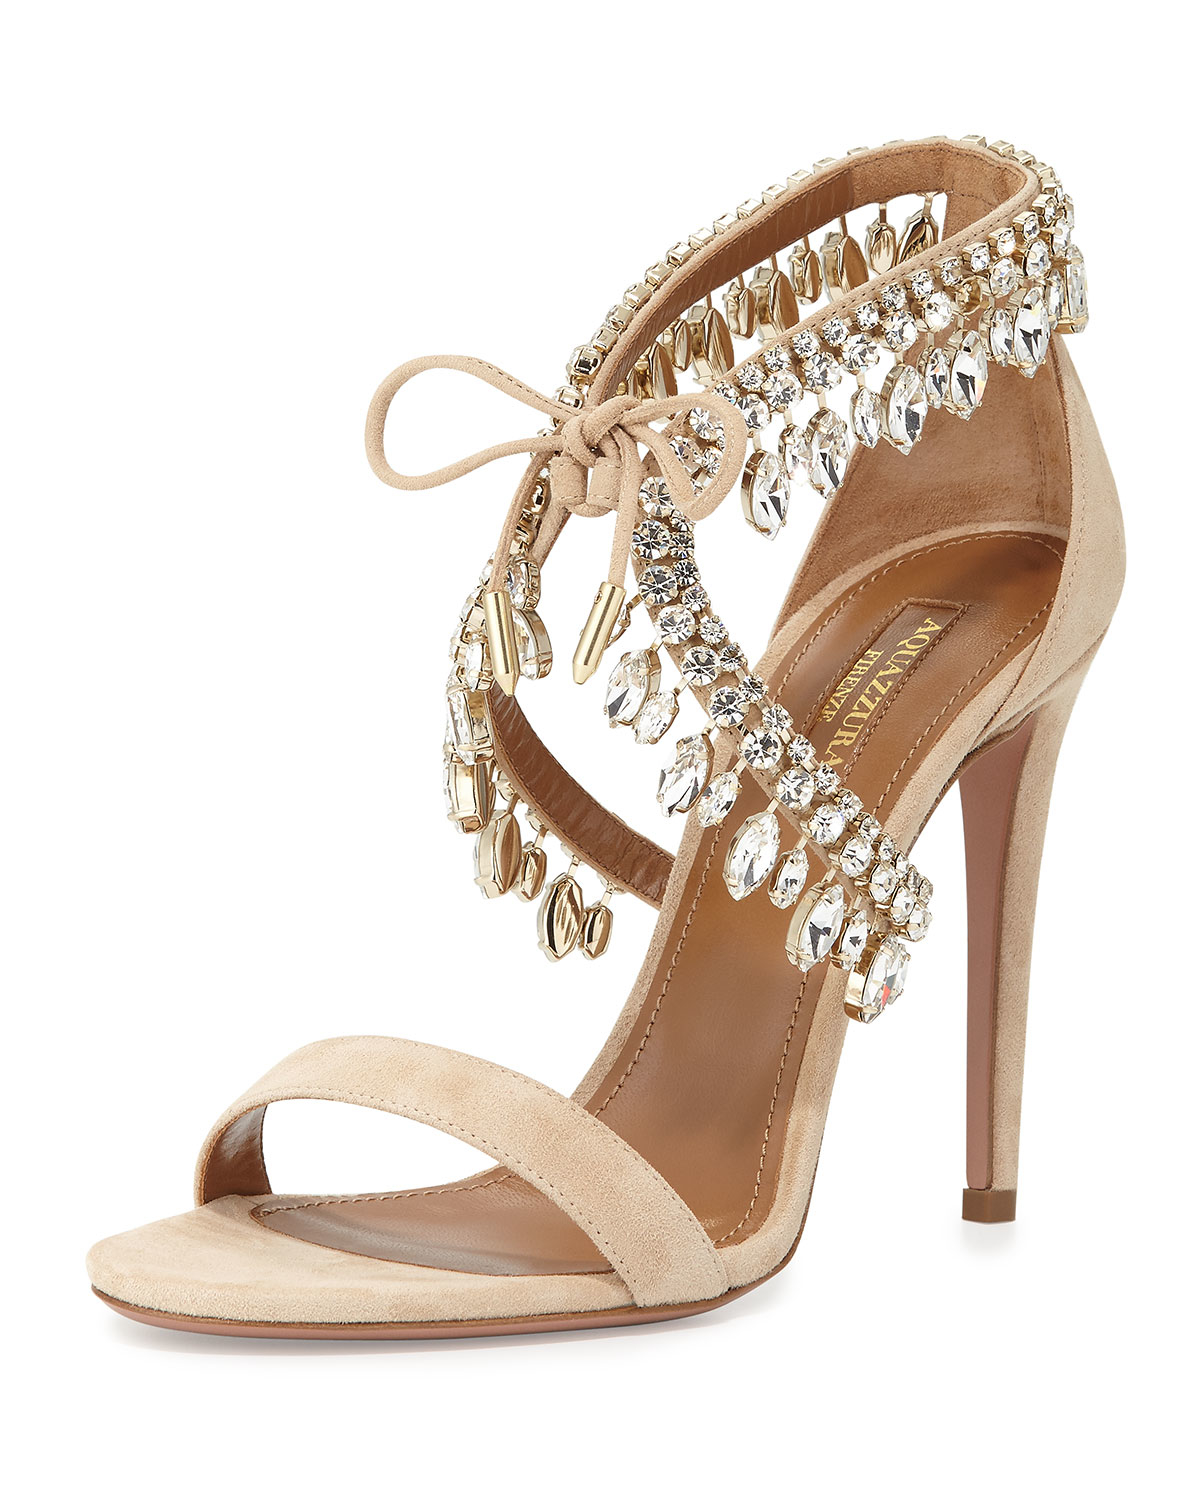 fb225a0f9 Aquazzura Milla Jeweled Suede Sandals in Metallic - Lyst